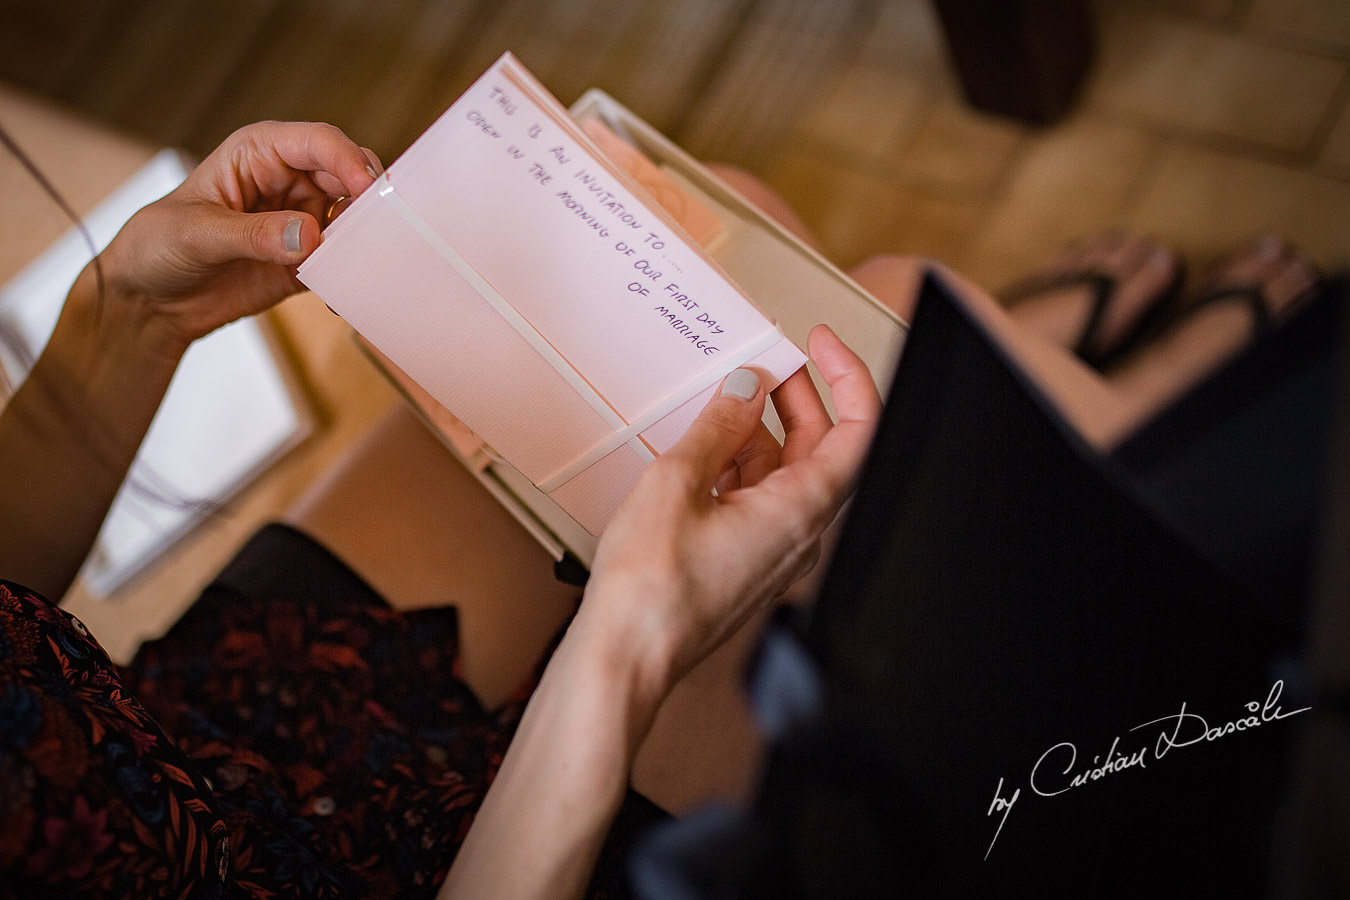 A beautiful wedding day at the Vasilias Nikoklis Inn in Paphos, captured by Cristian Dascalu. Letter from the groom to the bride.